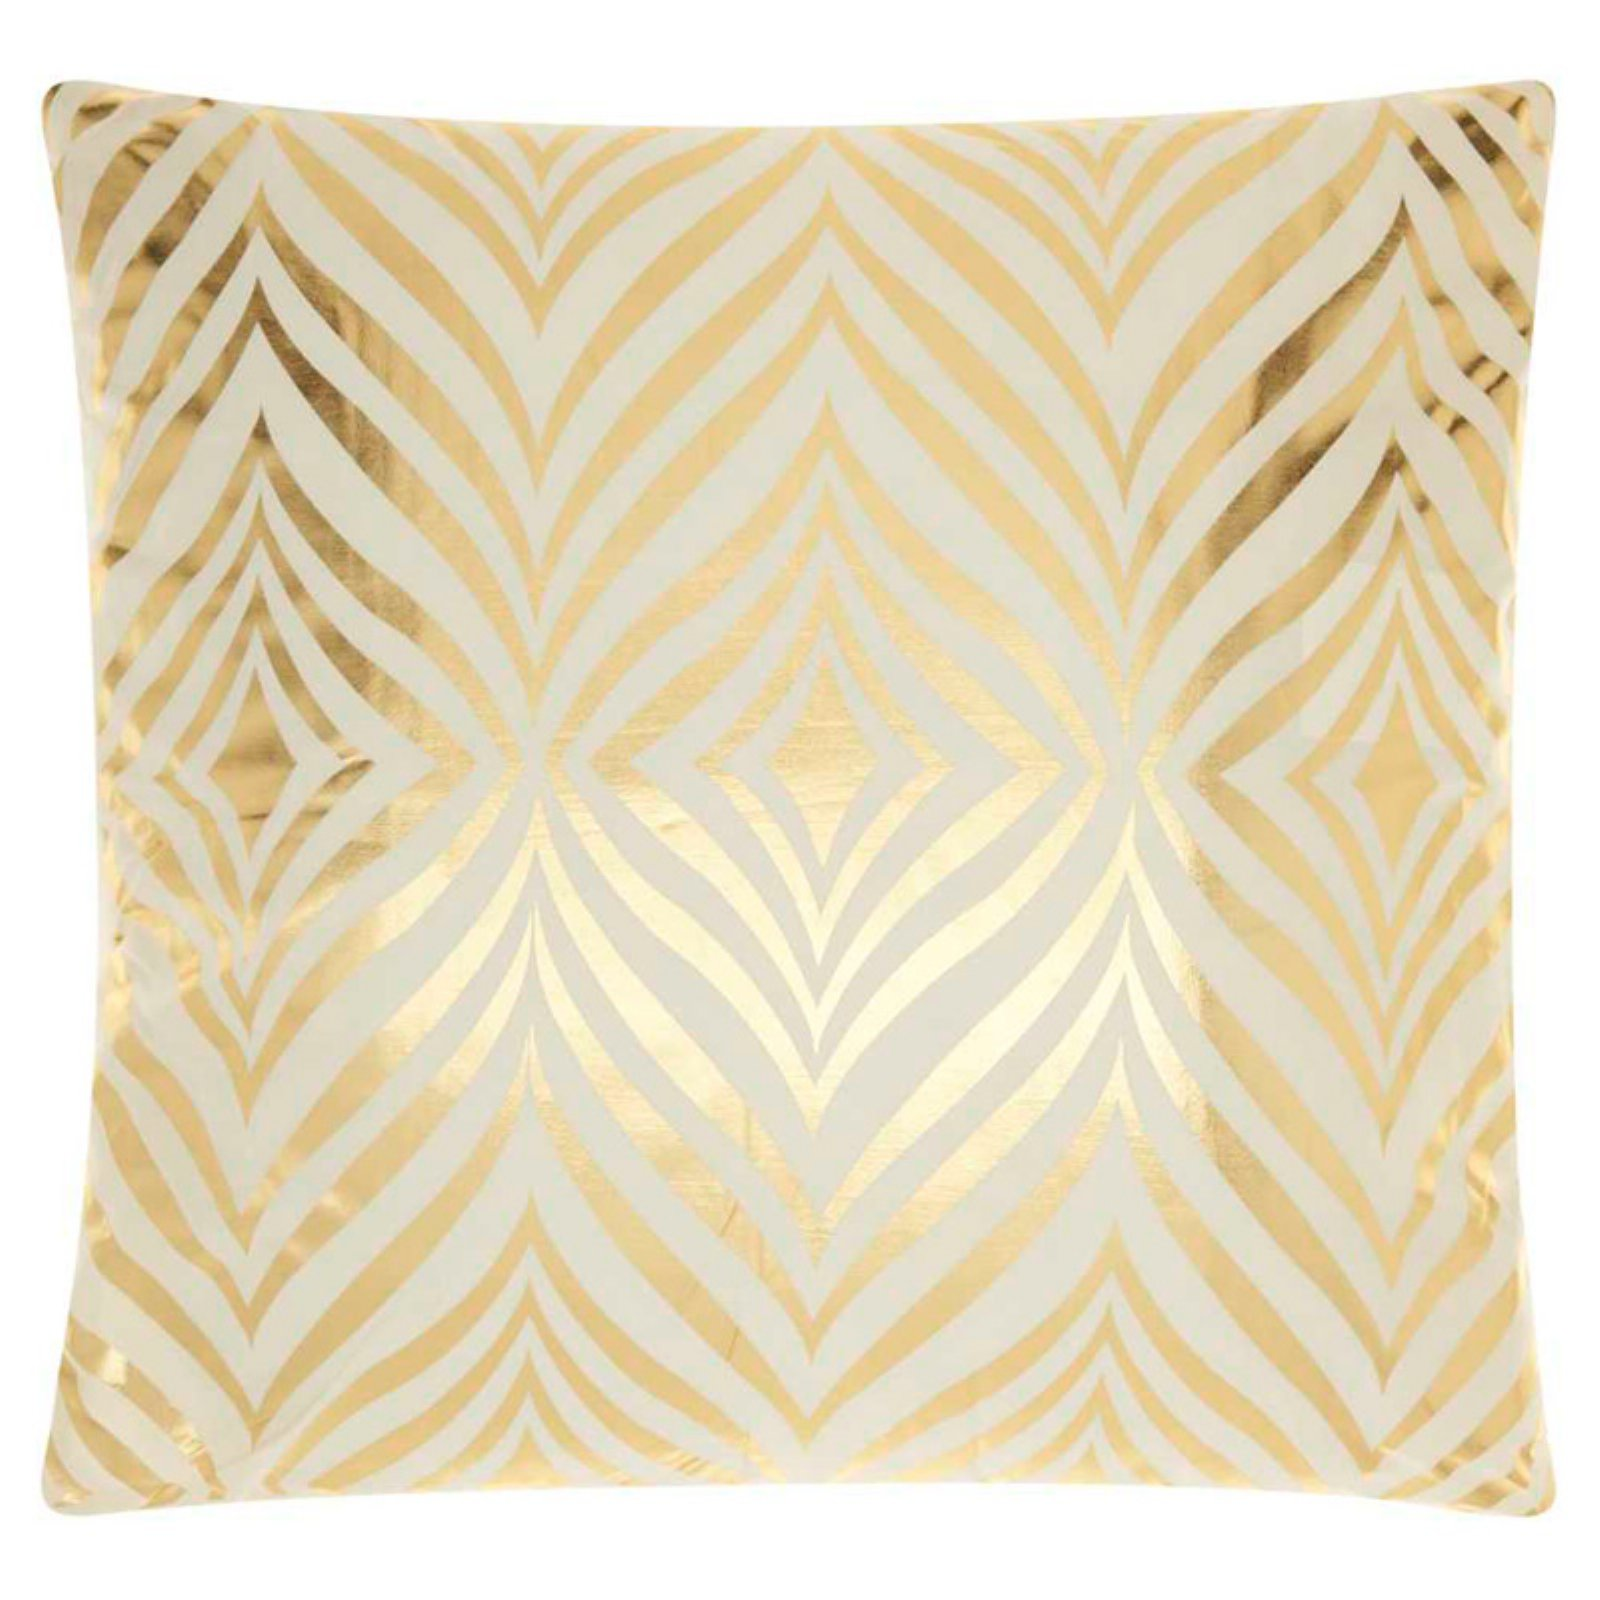 "Nourison Luminecence Diamond Zebra Decorative Throw Pillow, 18"" x 18"", Ivory Gold"